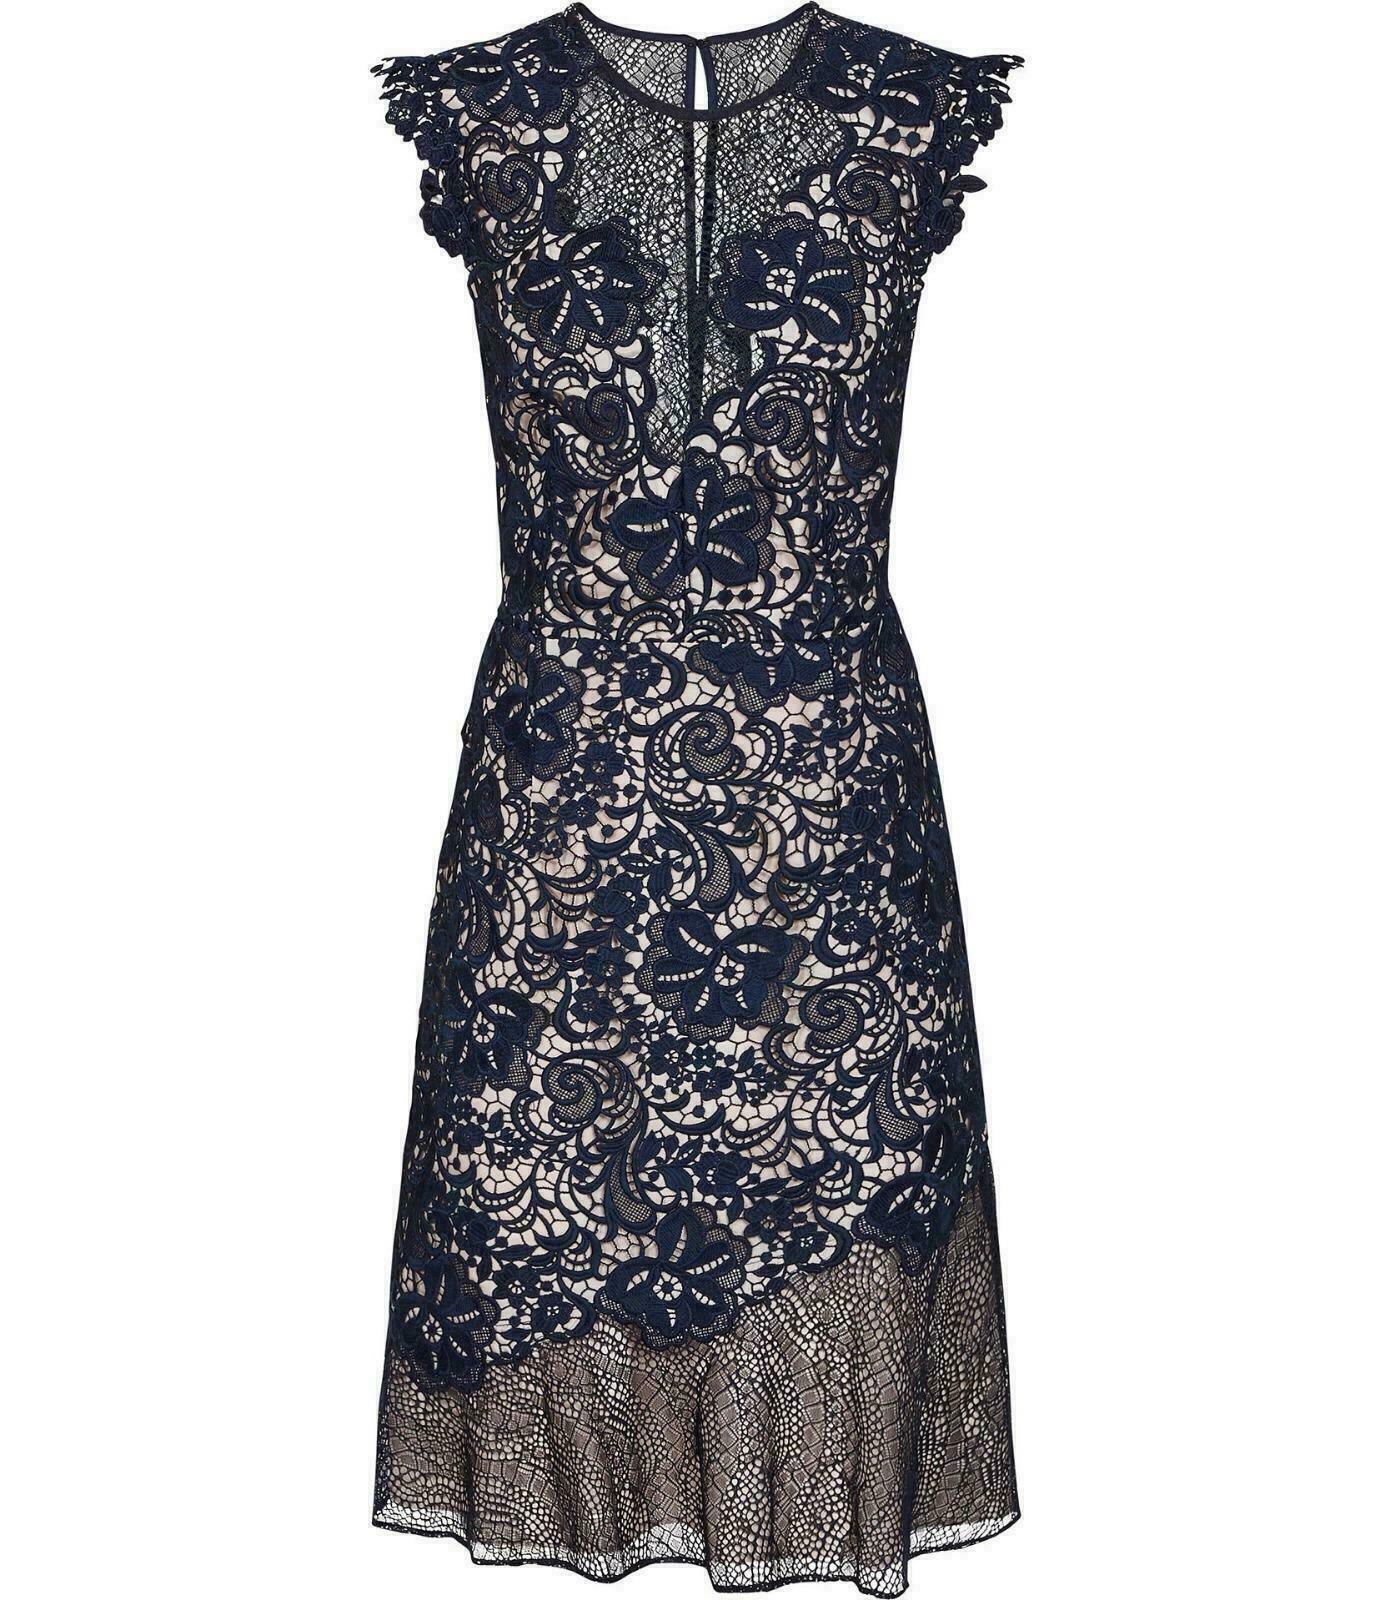 Reiss June Lace Embroidered Dress Navy bluee - Sizes to 16  rrp